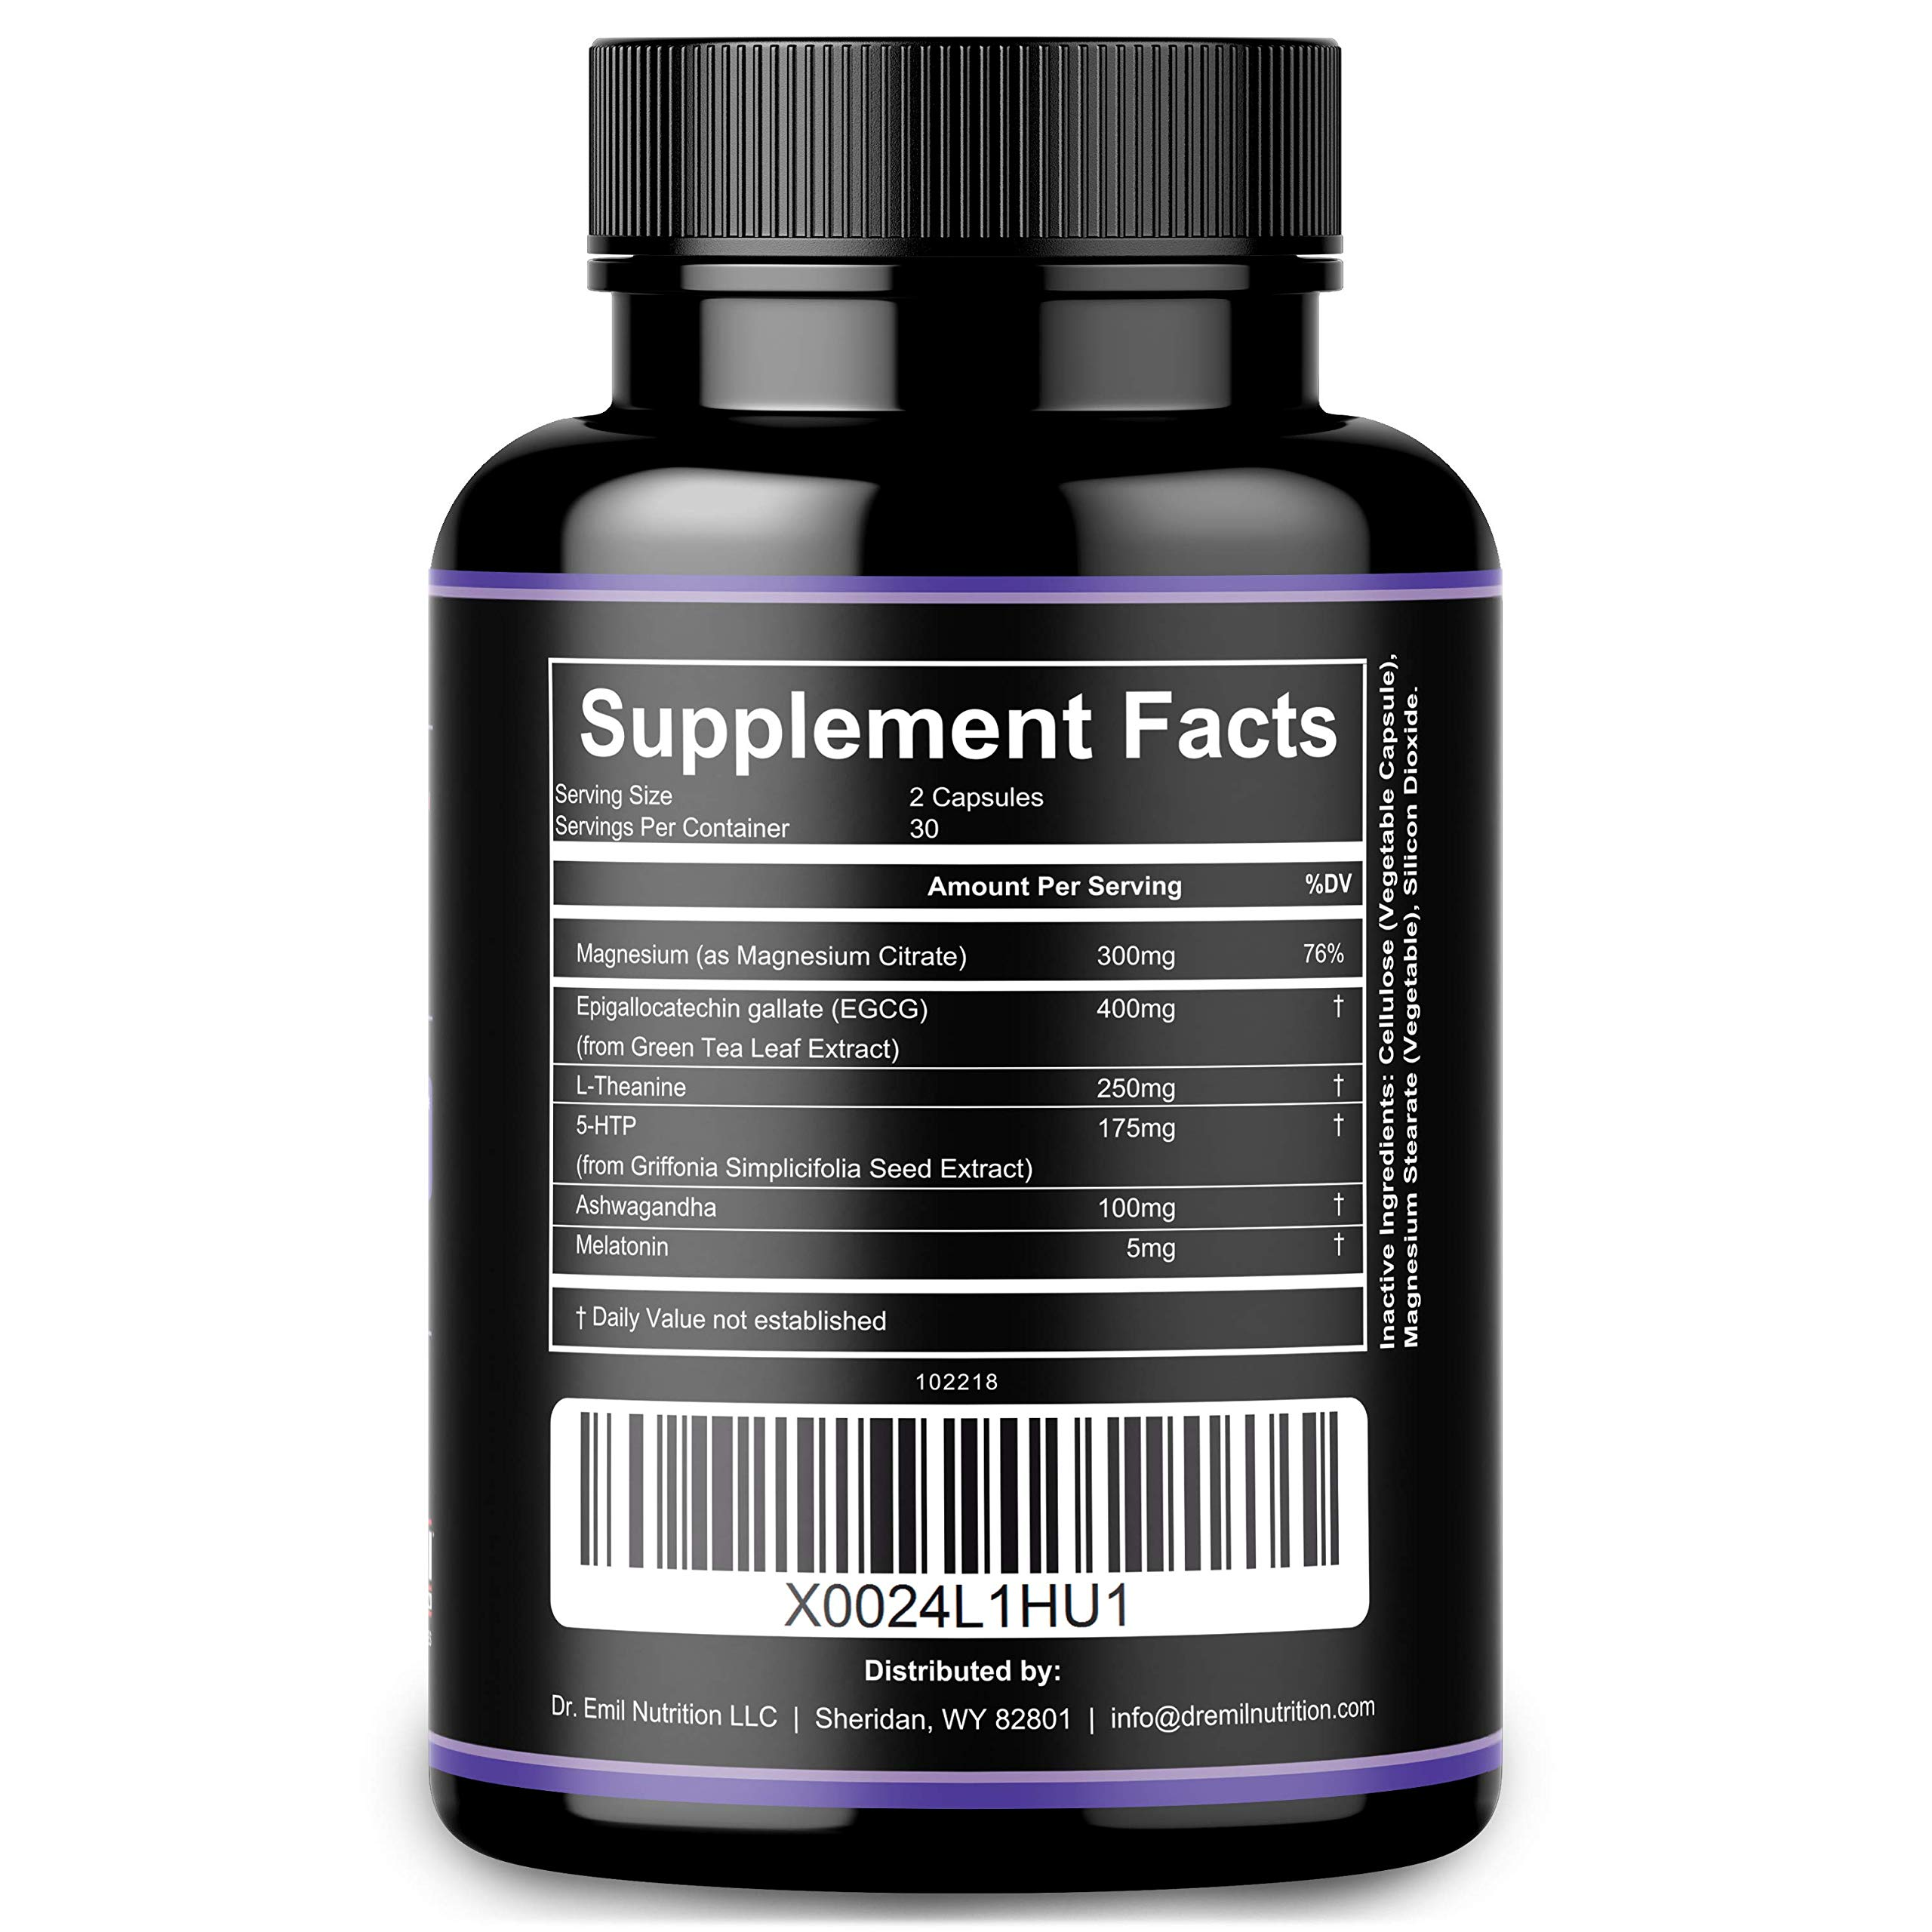 Dr. Emil - PM Fat Burner, Sleep Aid and Night Time Appetite Suppressant - Stimulant-Free Weight Loss Pills and Metabolism Booster for Men and Women (60 Vegan Diet Pills) by DR EMIL NUTRITION (Image #7)